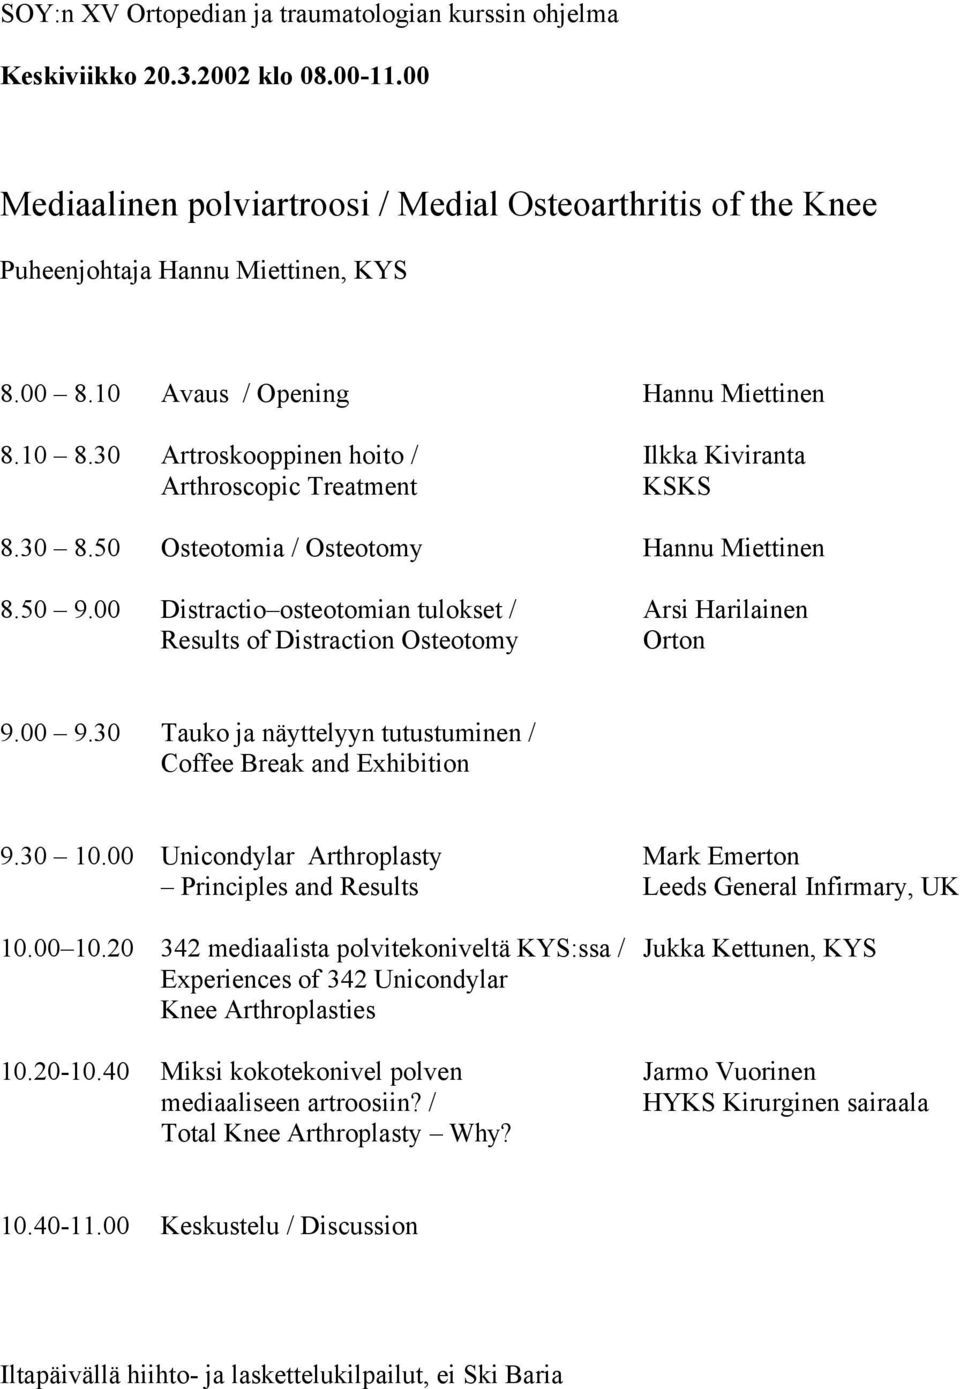 00 Distractio osteotomian tulokset / Arsi Harilainen Results of Distraction Osteotomy Orton 9.00 9.30 Tauko ja näyttelyyn tutustuminen / Coffee Break and Exhibition 9.30 10.